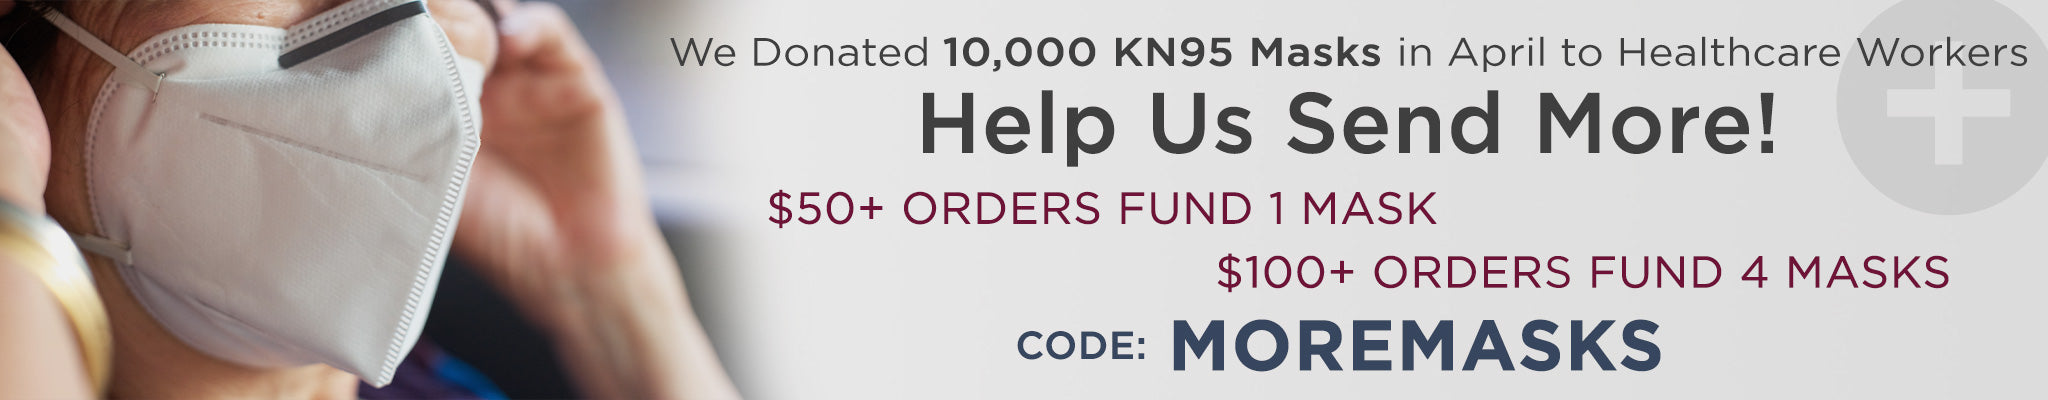 We Donated 10,000 KN95 Masks in April to Frontline Healthcare Workers Help Us Send More! $50+ Orders Fund 1 Mask $100+ Orders Fund 4 Masks  Code: MOREMASKS